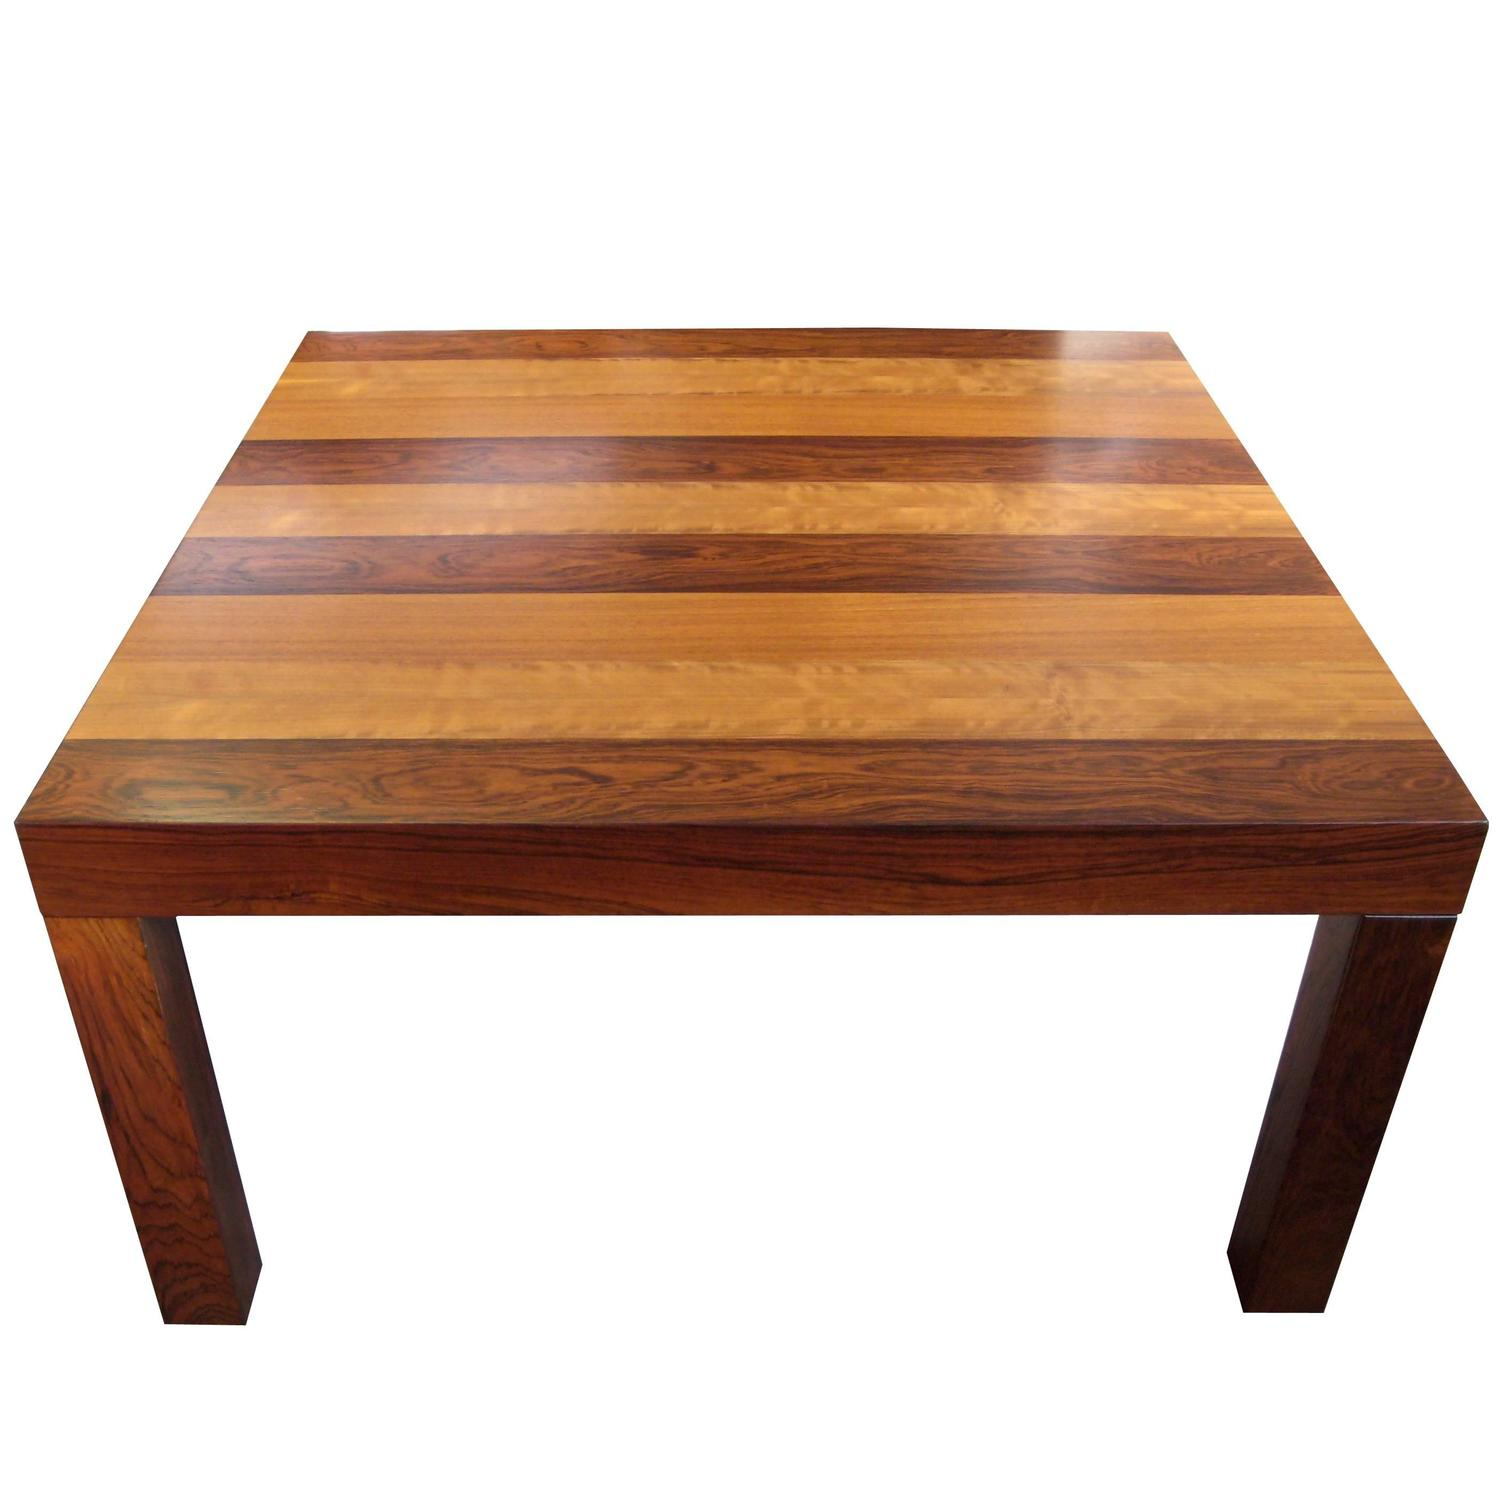 Modern Parsons Square Coffee Table In Strips Of Wood Attributed To Milo Baughman For Sale At 1stdibs